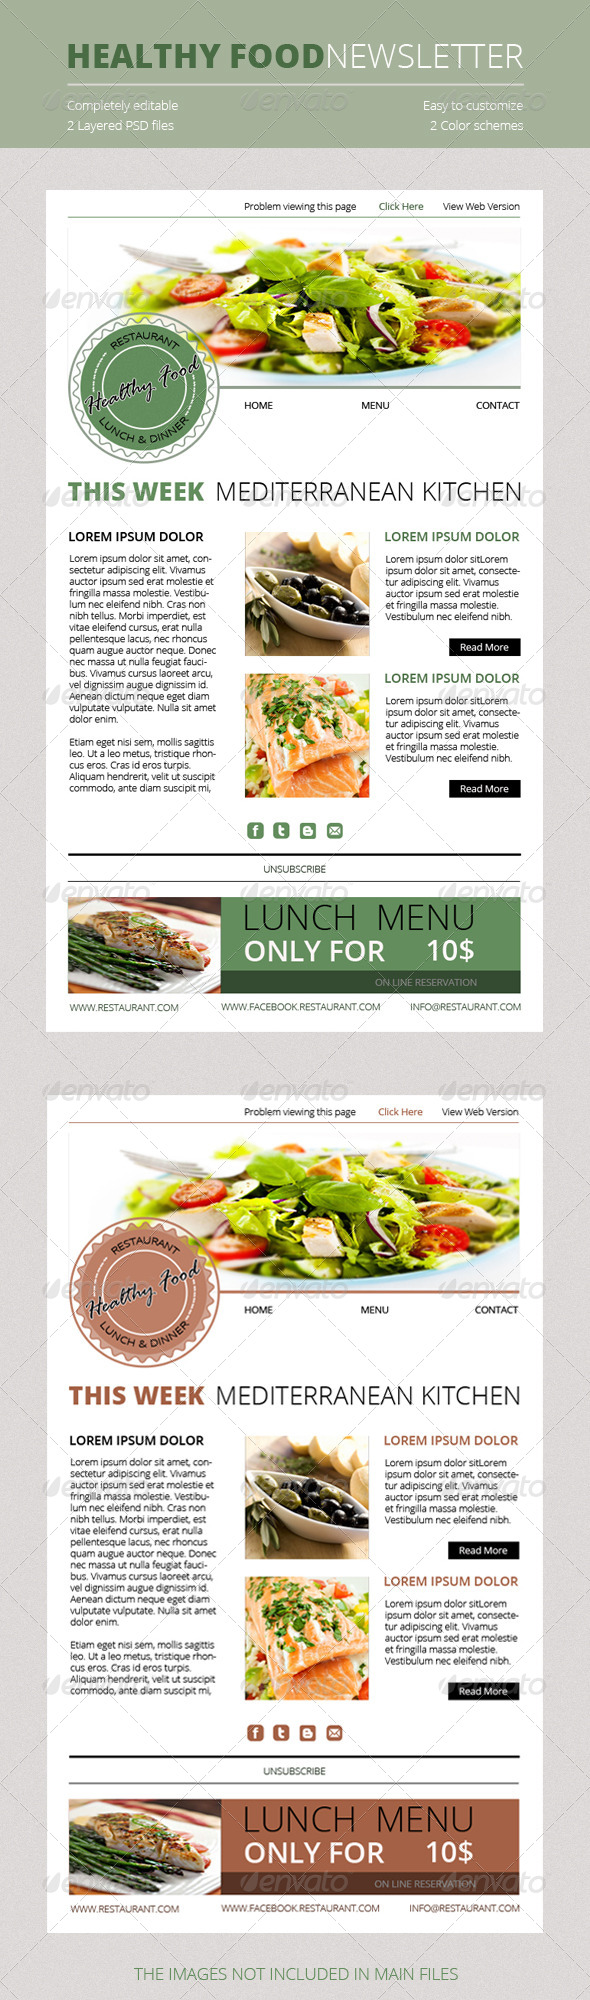 Healthy food newsletter by k project graphicriver healthy food newsletter forumfinder Gallery